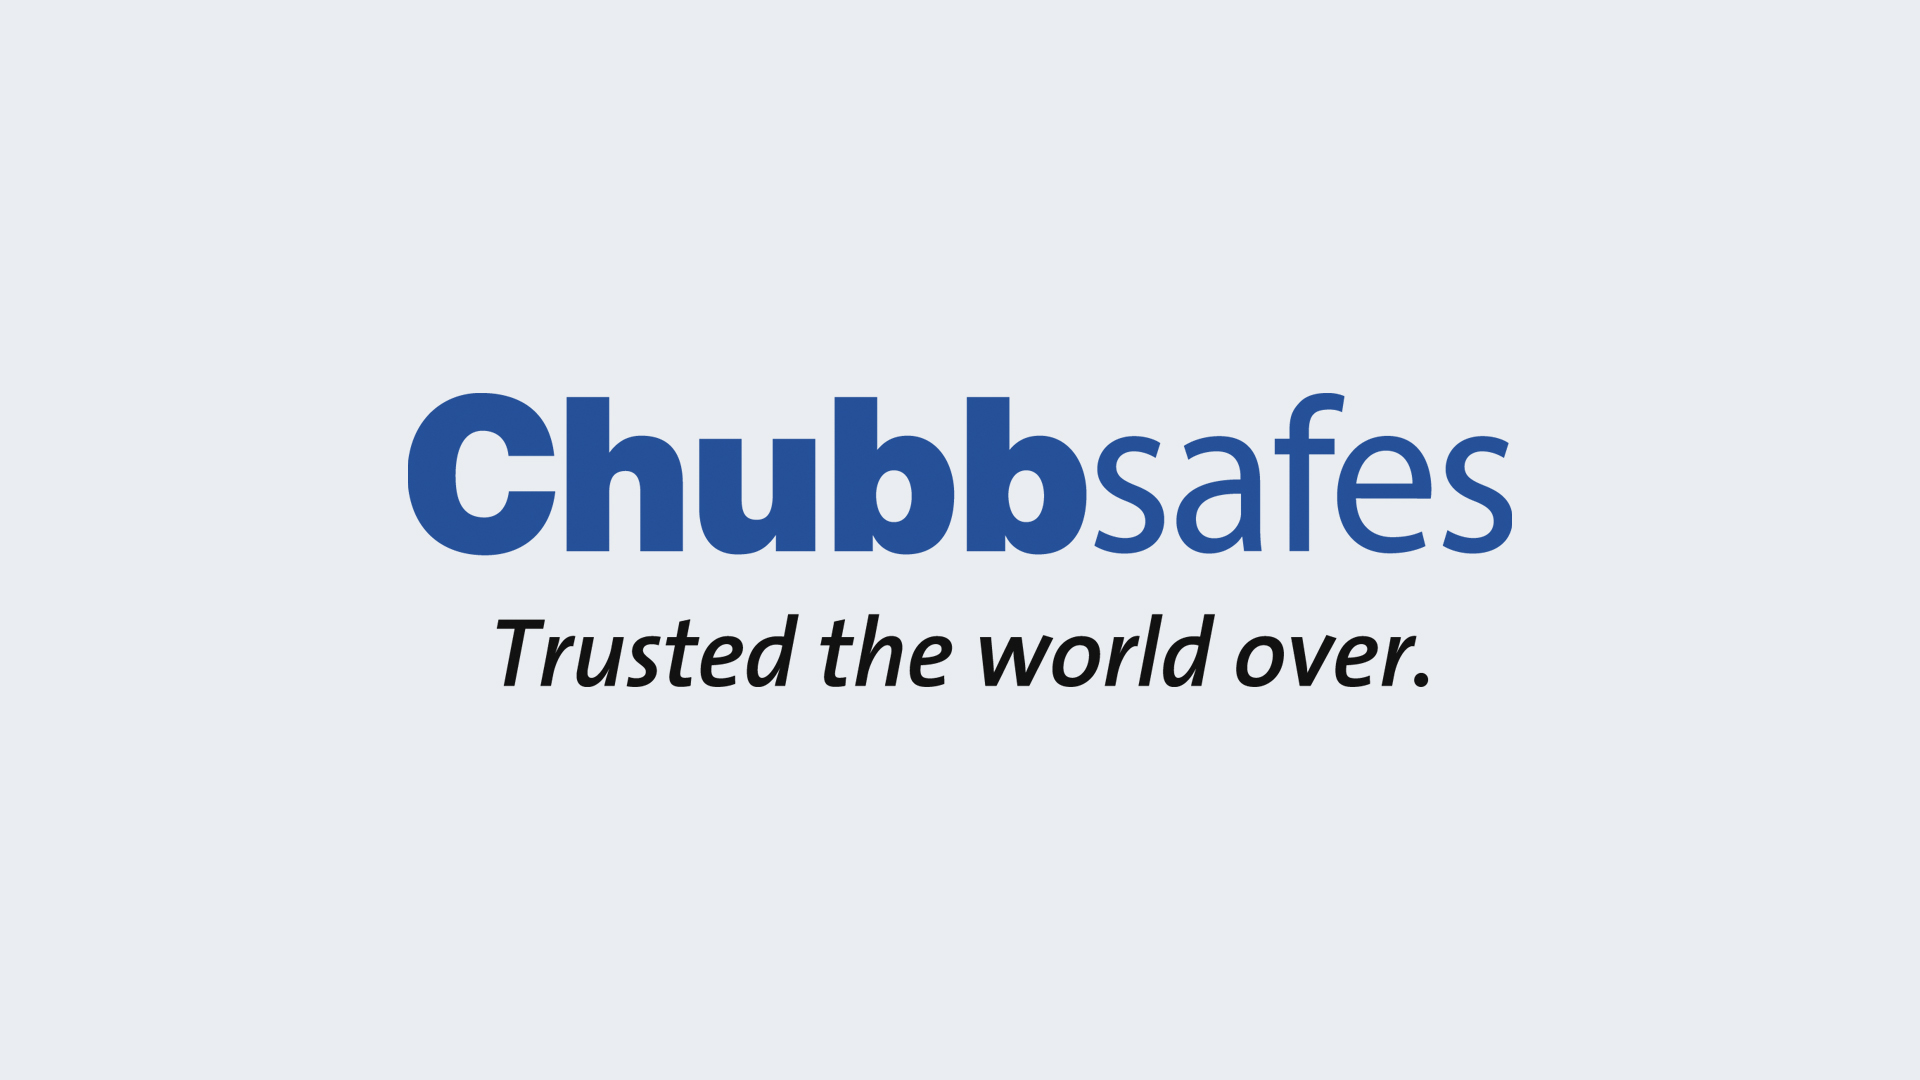 Chubbsafes